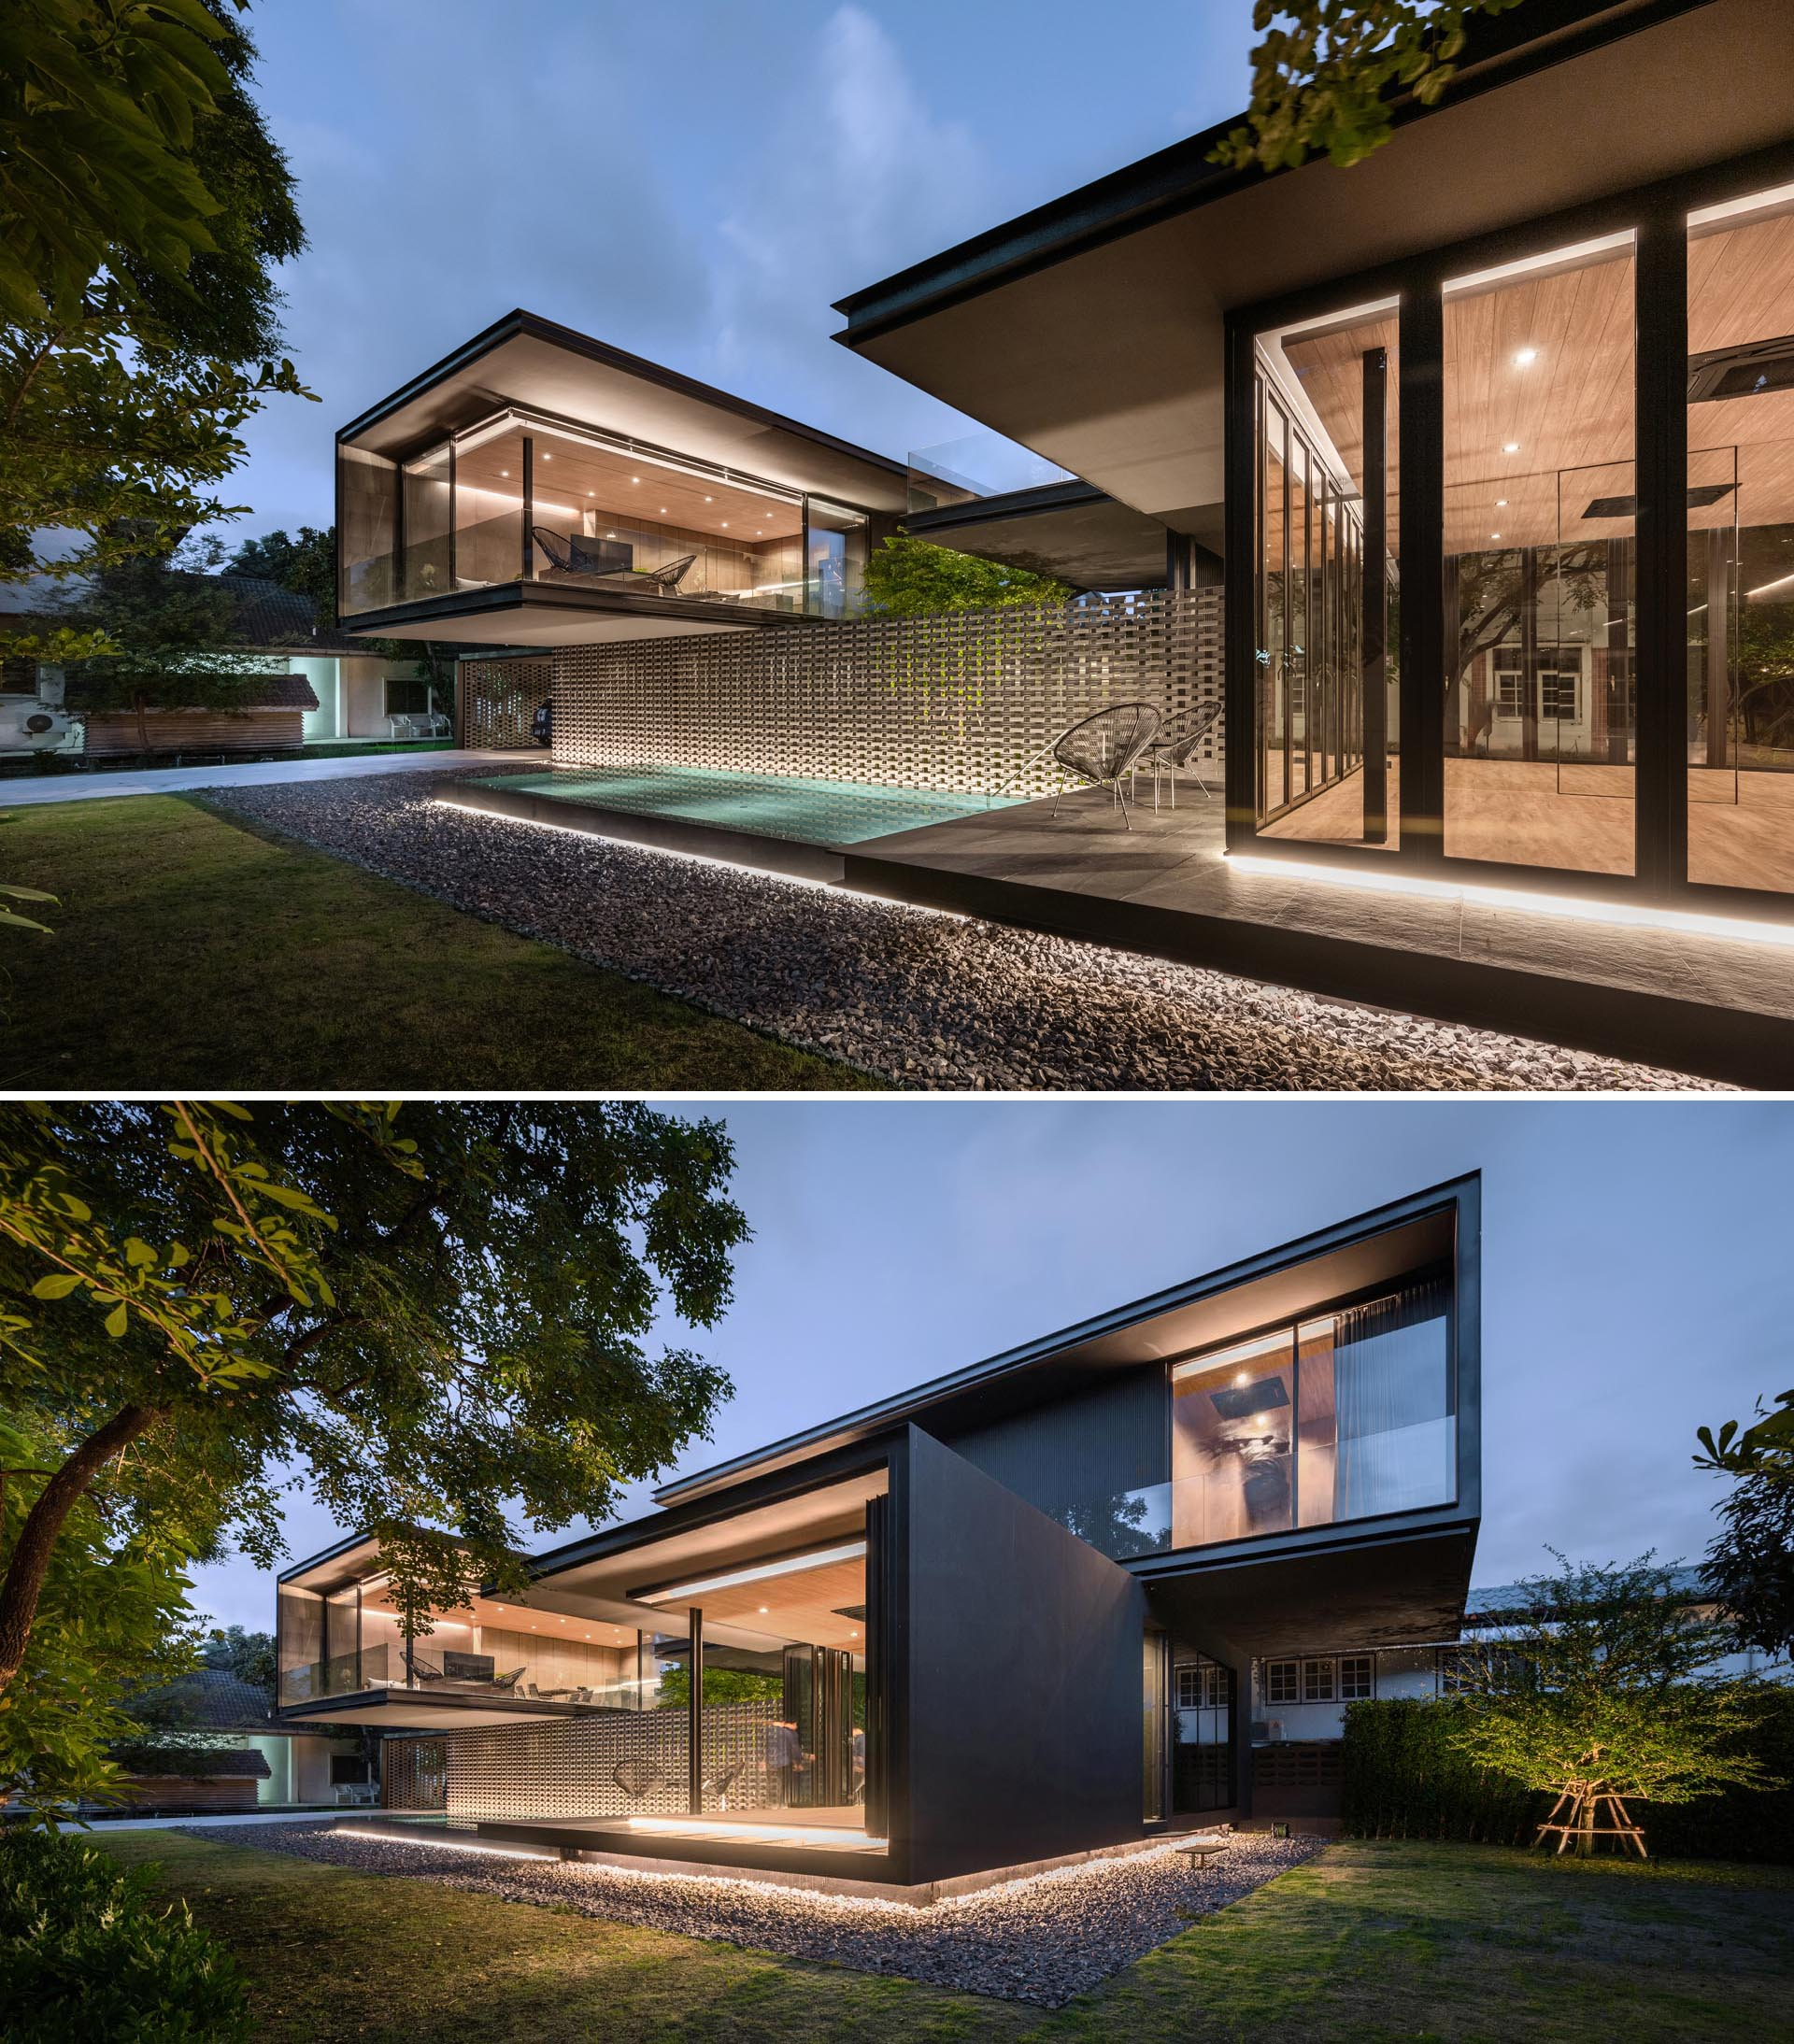 Lighting has been used both on the exterior and interior of this modern house.